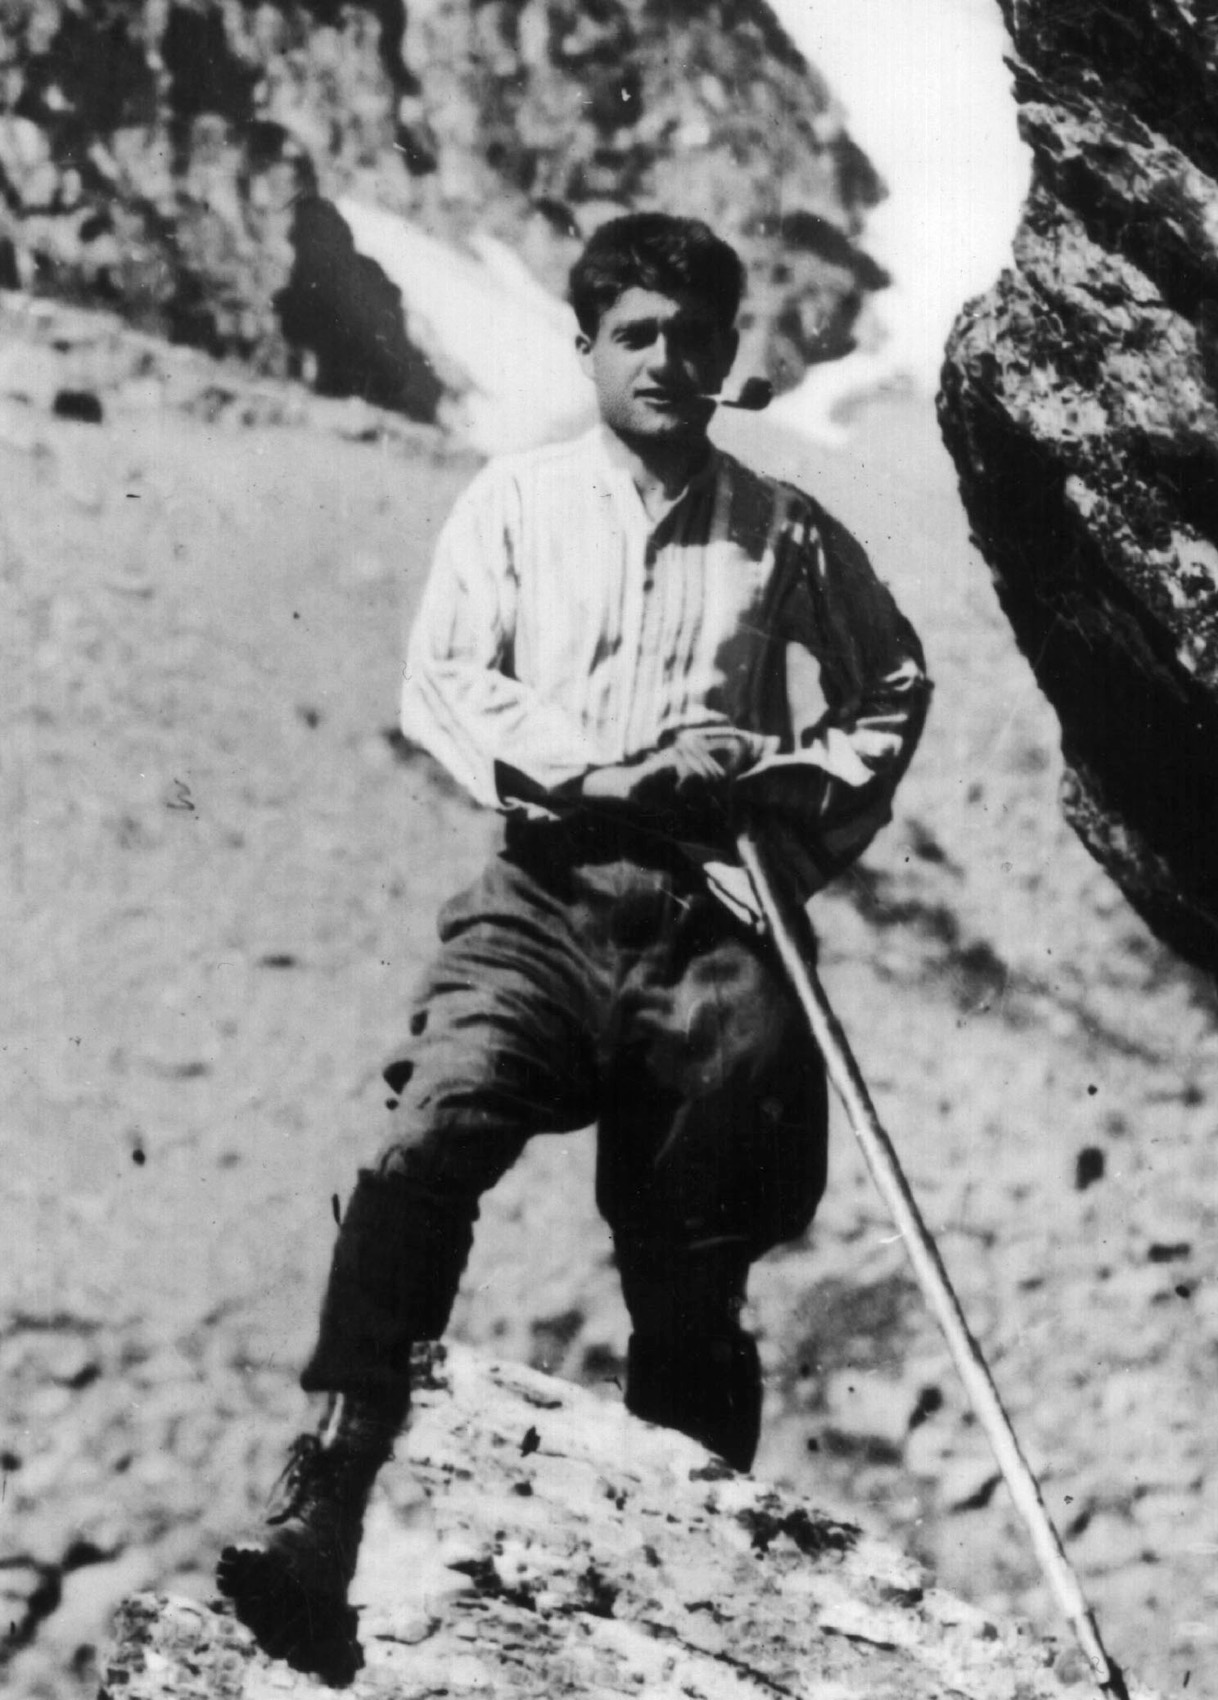 Italian Blessed Pier Giorgio Frassati was a struggling student who excelled in mountain climbing. He had complete faith in God and persevered through college, dedicating himself to helping the poor and supporting church social teaching. He died at age 24 and was beatified by Pope John Paul II in 1990. He is pictured in an undated photo. (CNS file photo) (Aug. 19, 2005) See VATICAN LETTER Aug. 19, 2005.